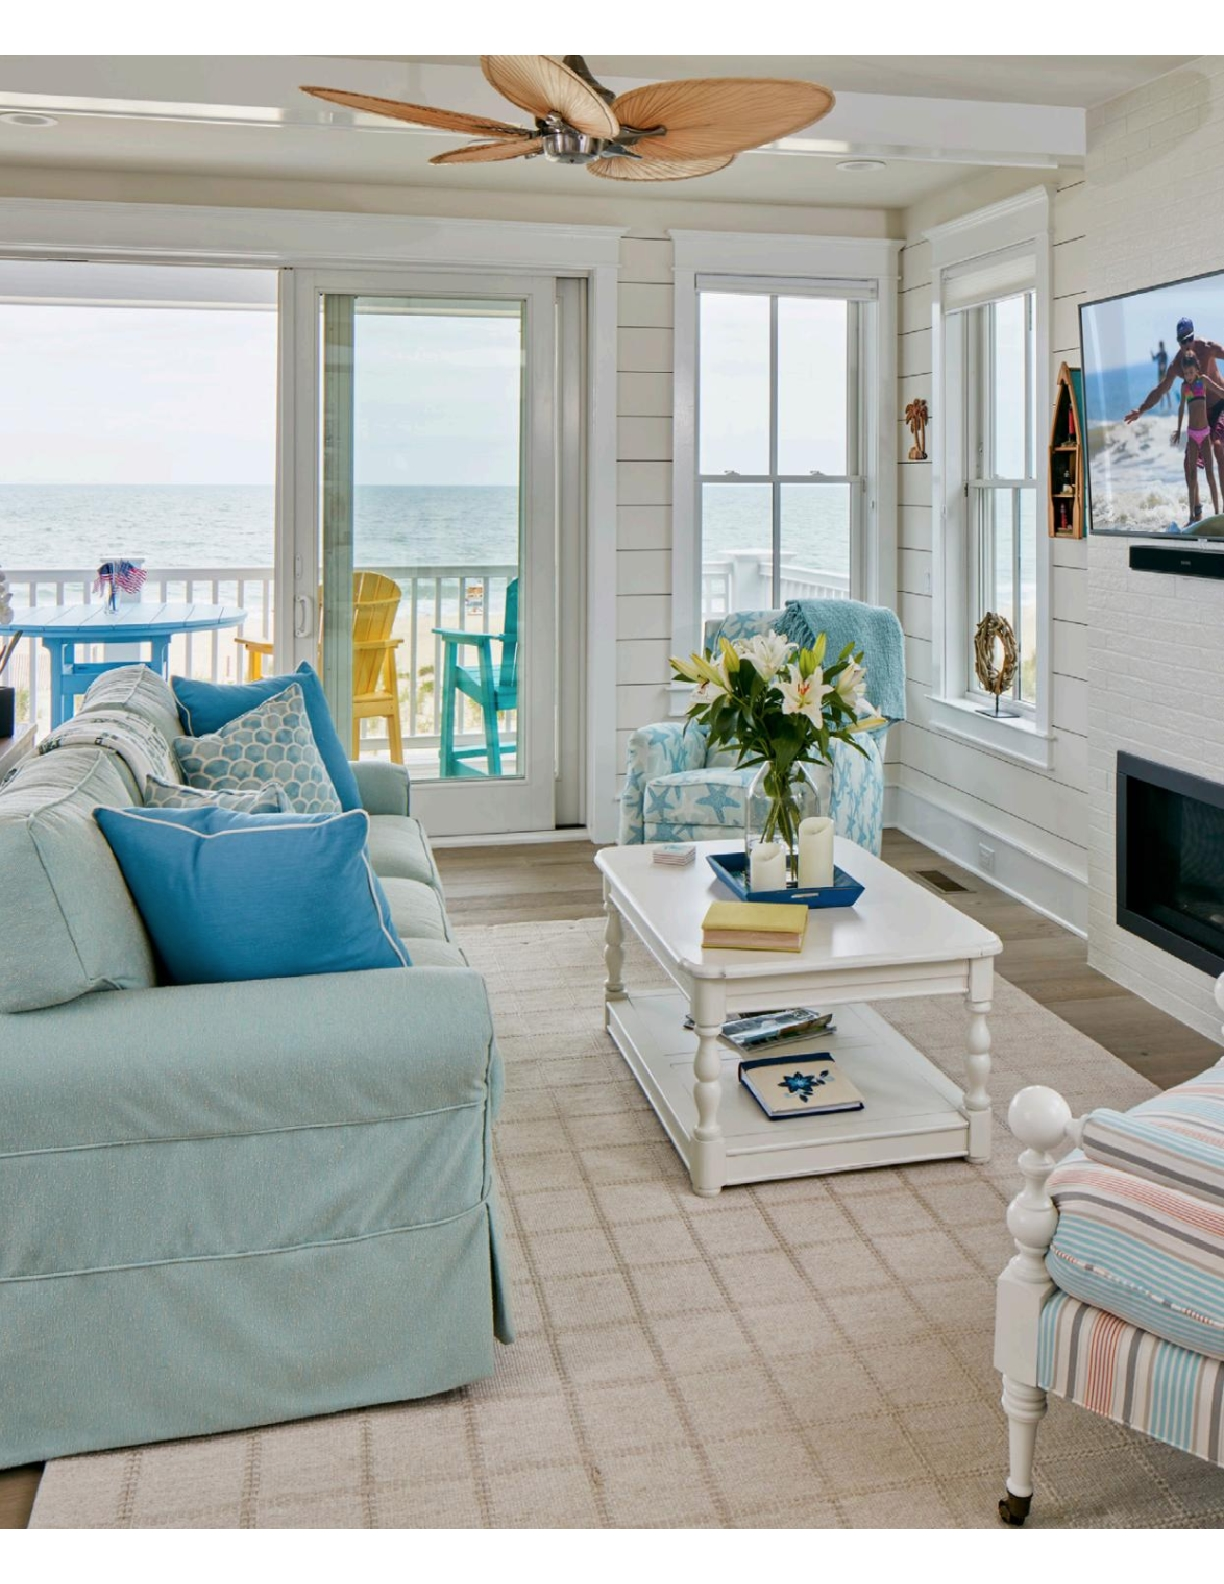 It's All About the Ocean Views